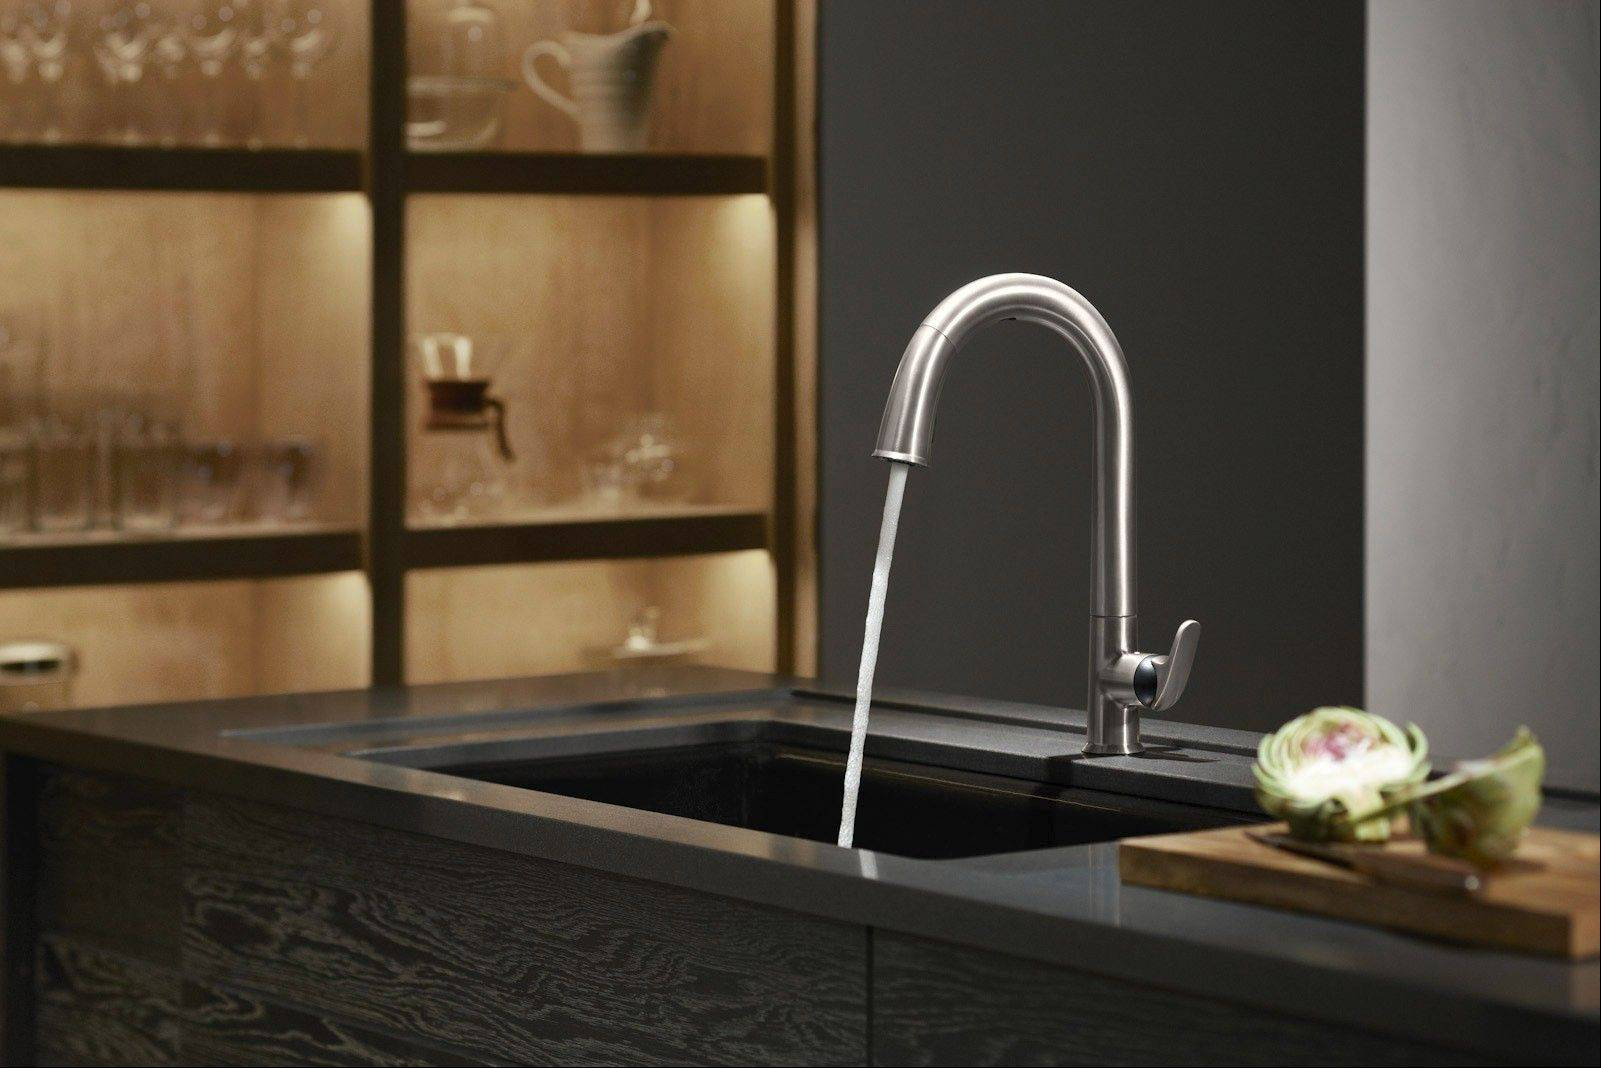 Homeowners are giving �touchless� kitchen faucets a big thumbs up.